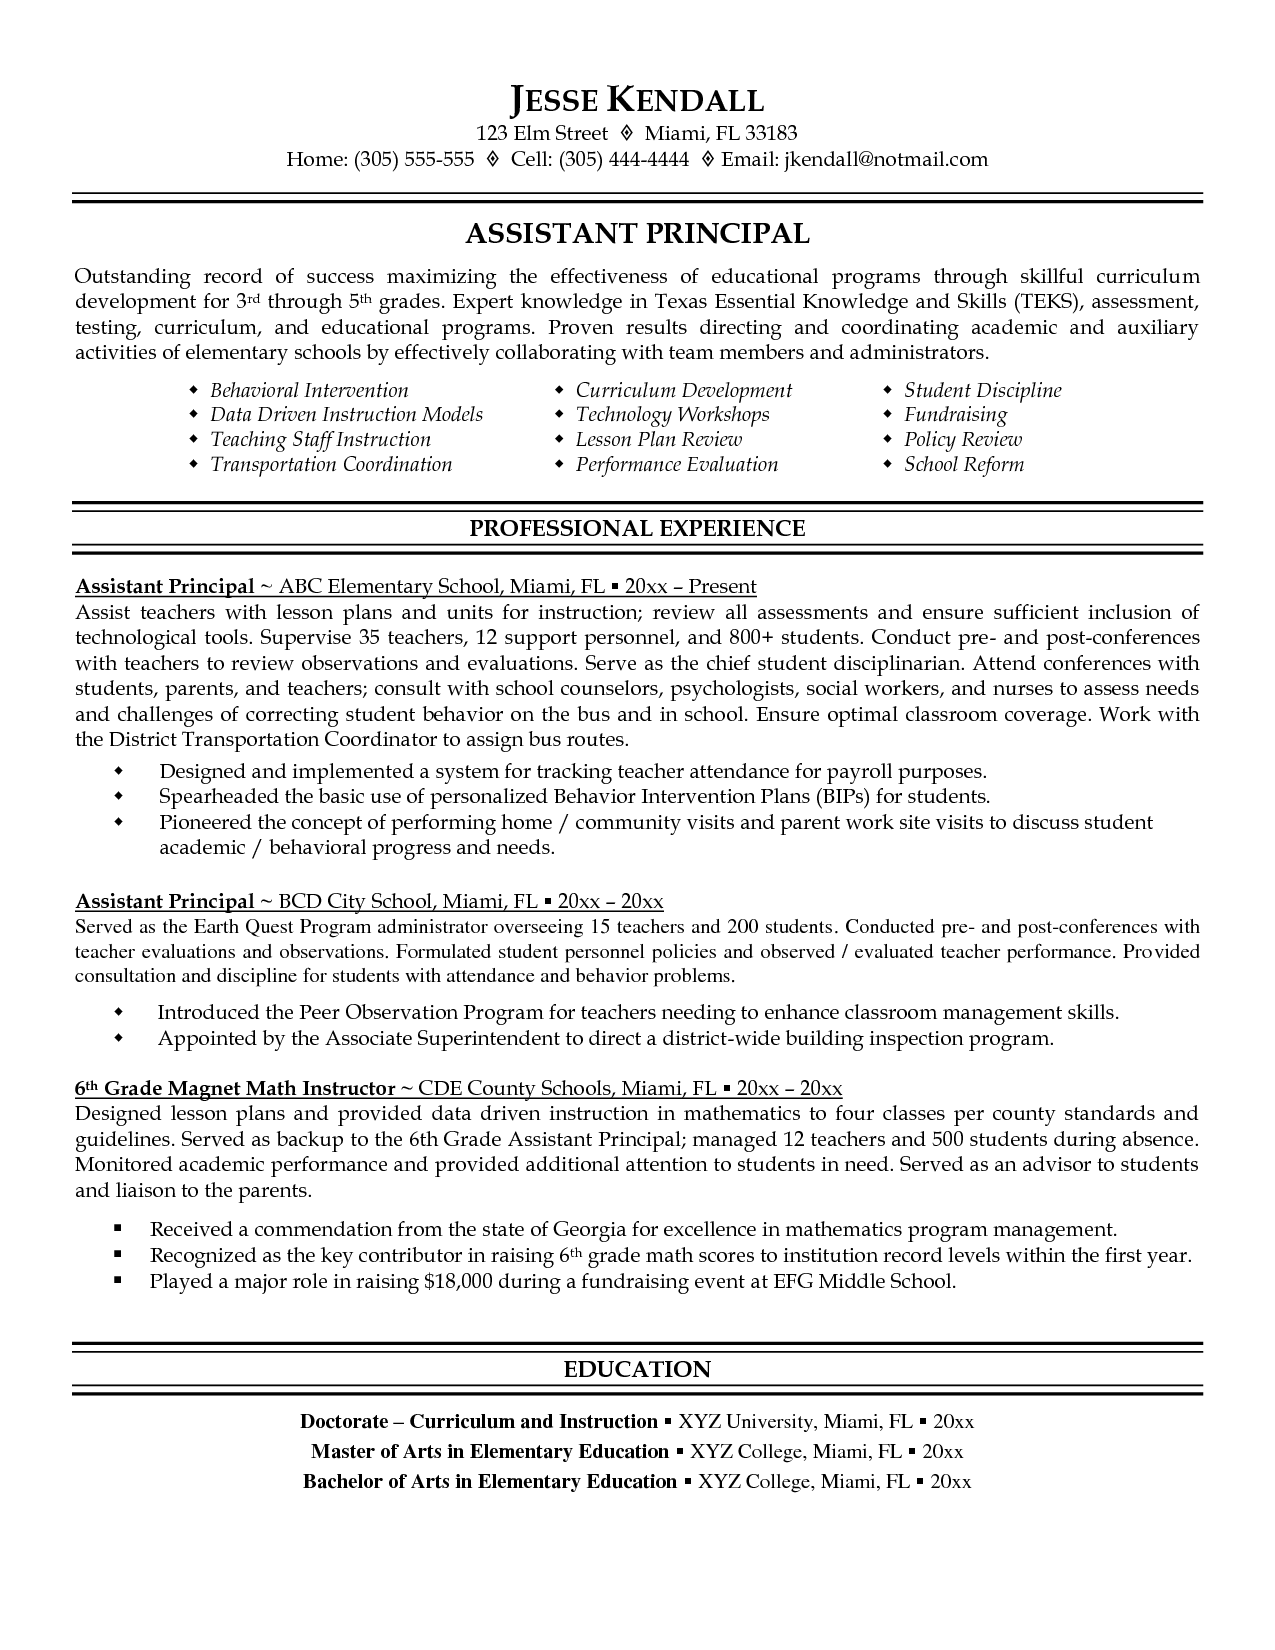 Resume And Vice Principal Assistant Principal Resume